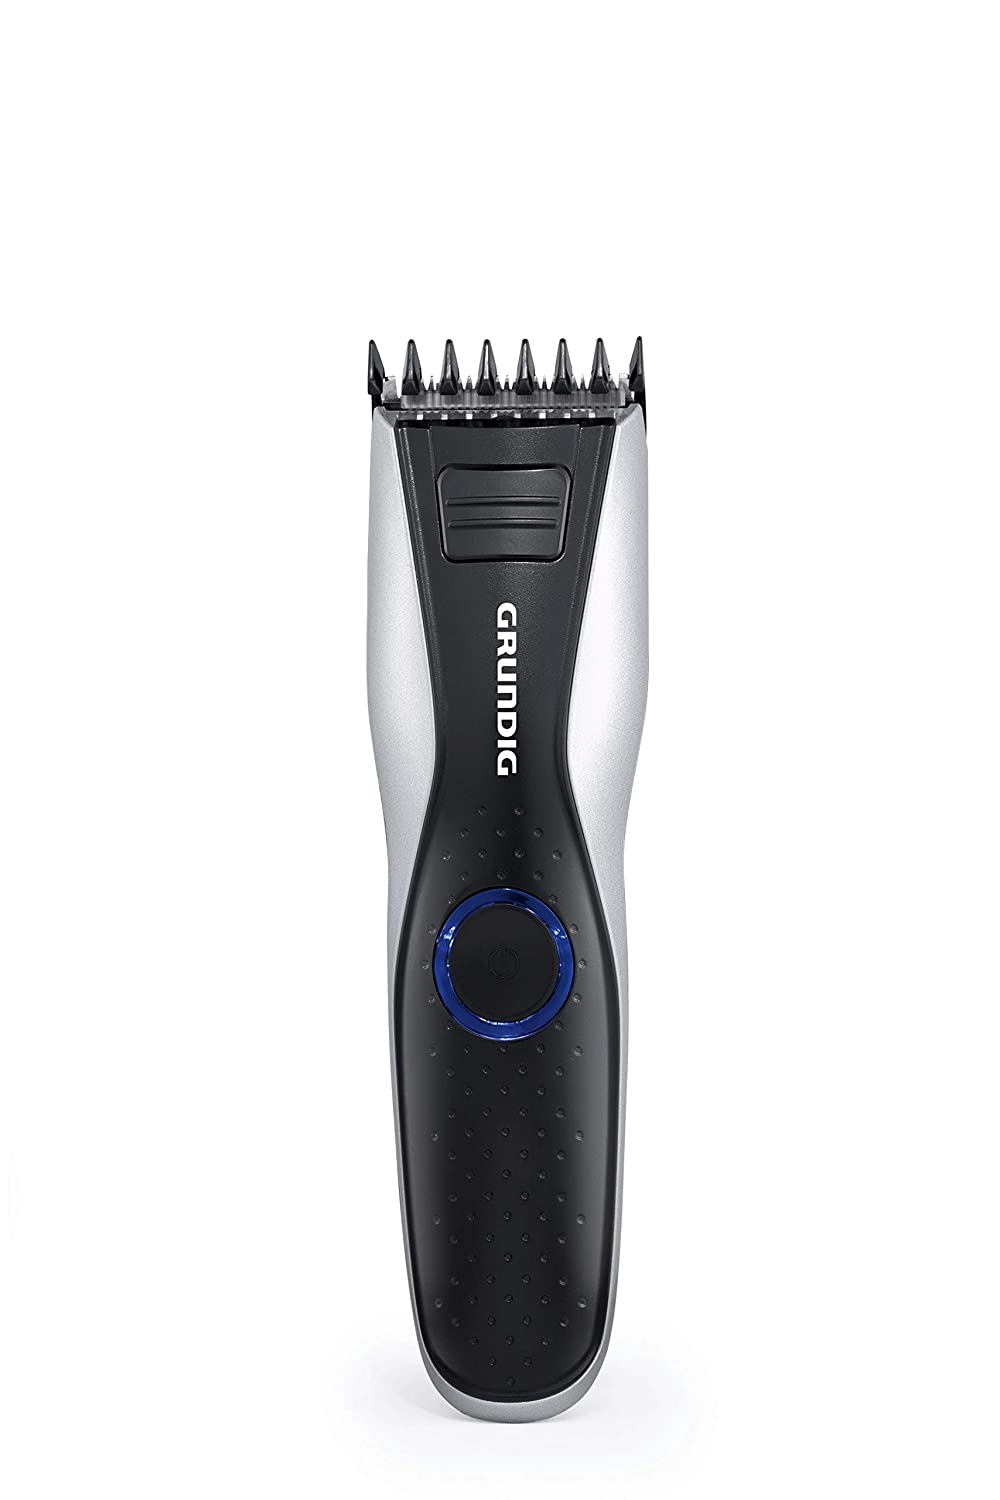 Grundig mc6840 mc6840 de pelo y barba, batería/Red, LED: Amazon.es ...